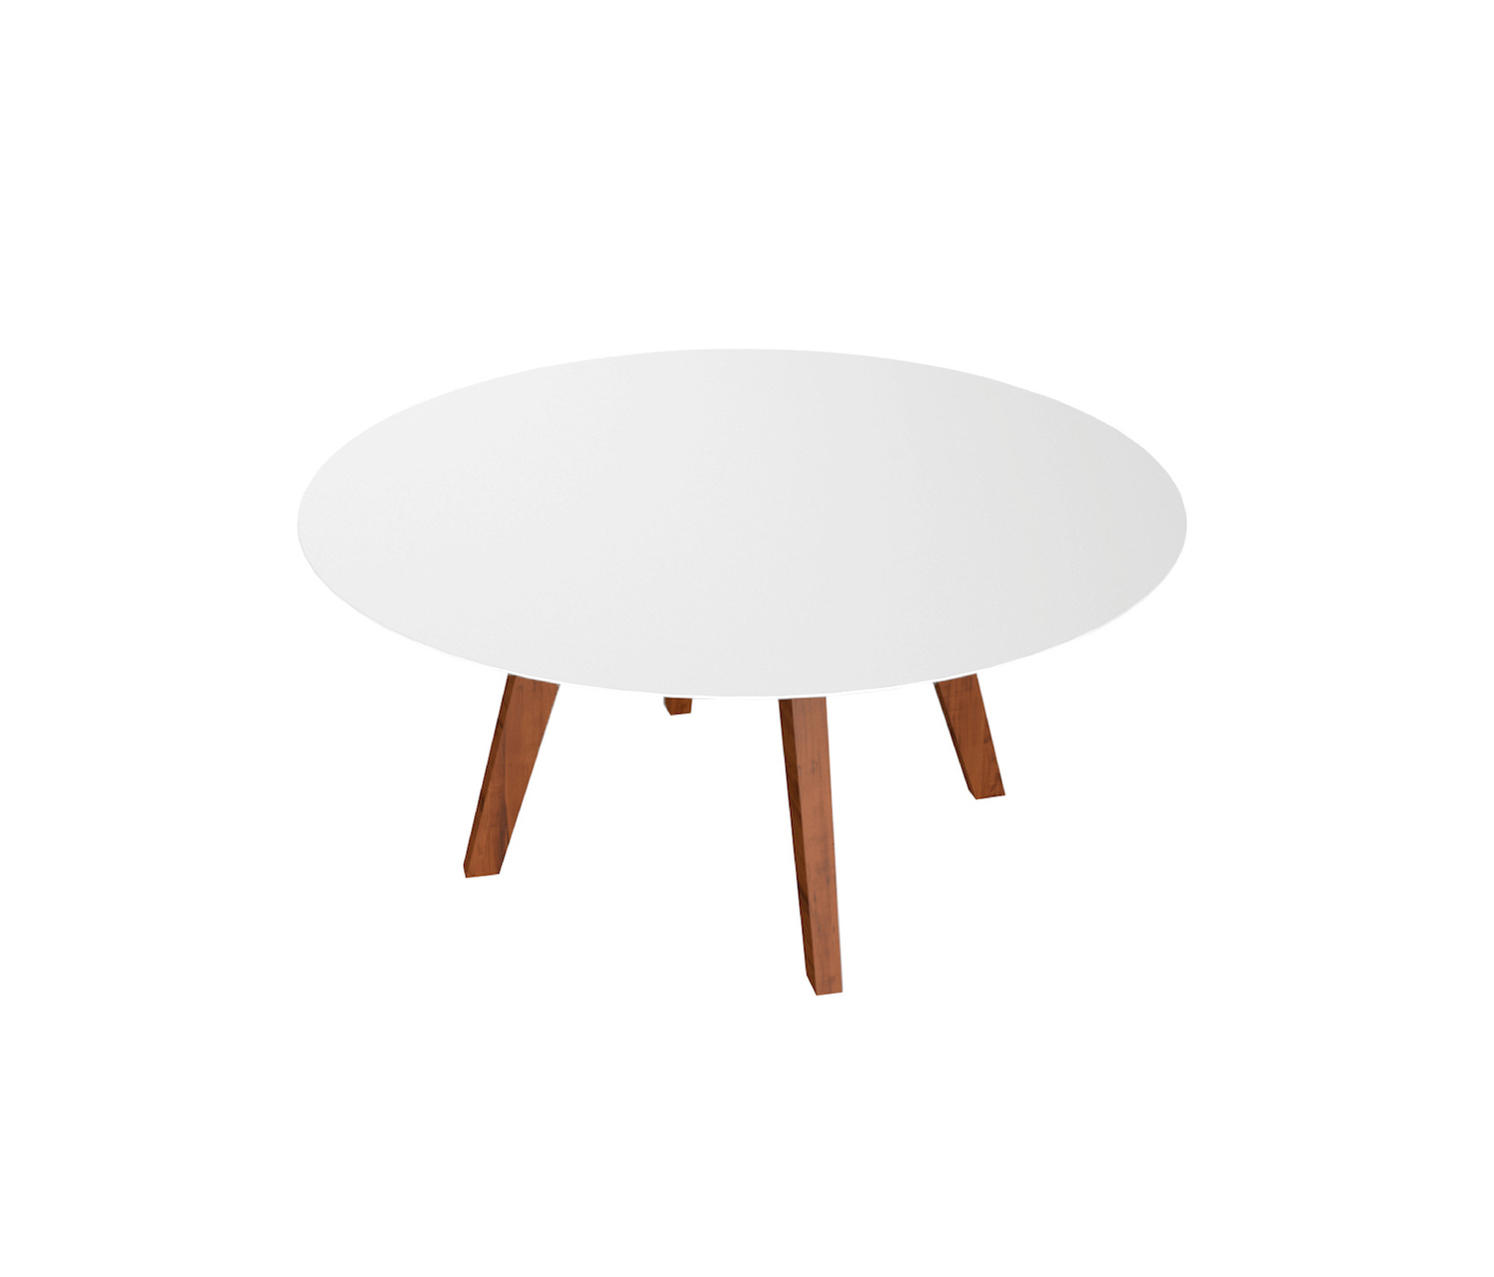 Slim Wood Collection Lounge Lounge Table Wood 90 Coffee Tables From Viteo Architonic